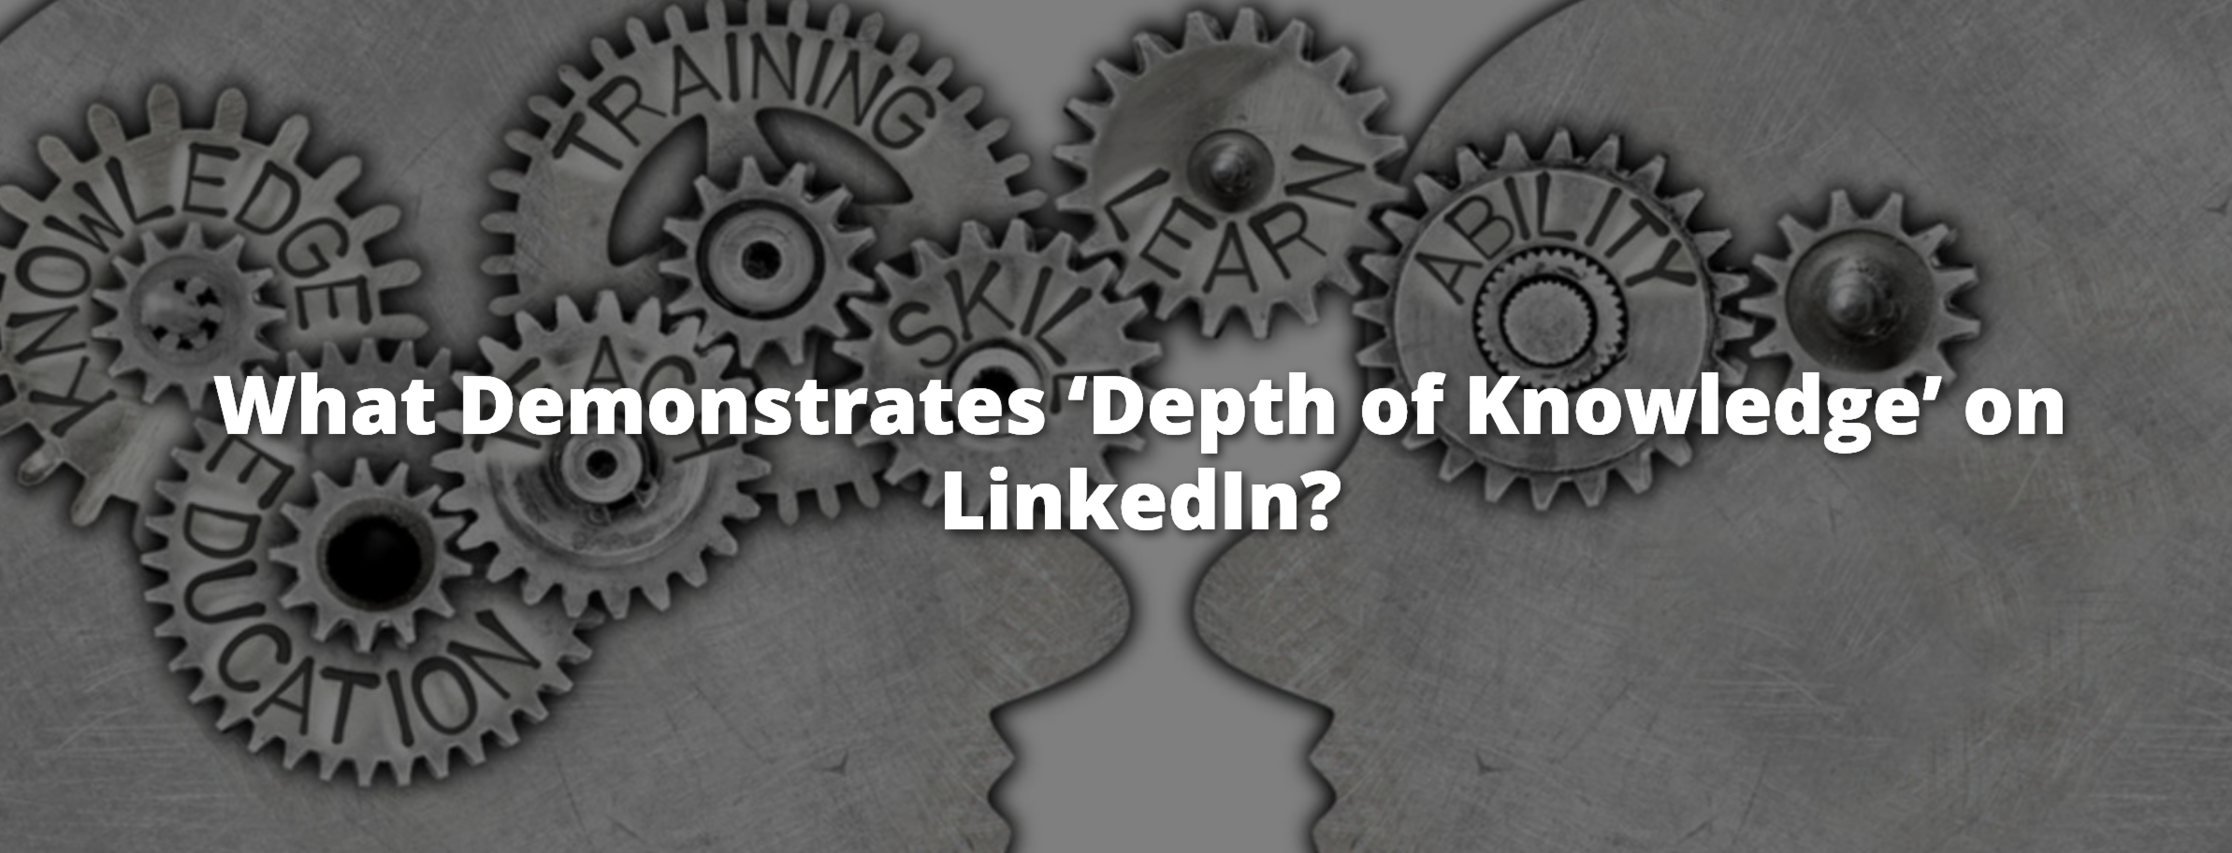 LinkedIn Content Ideas, What Demonstrates Depth of Knowledge on LinkedIn